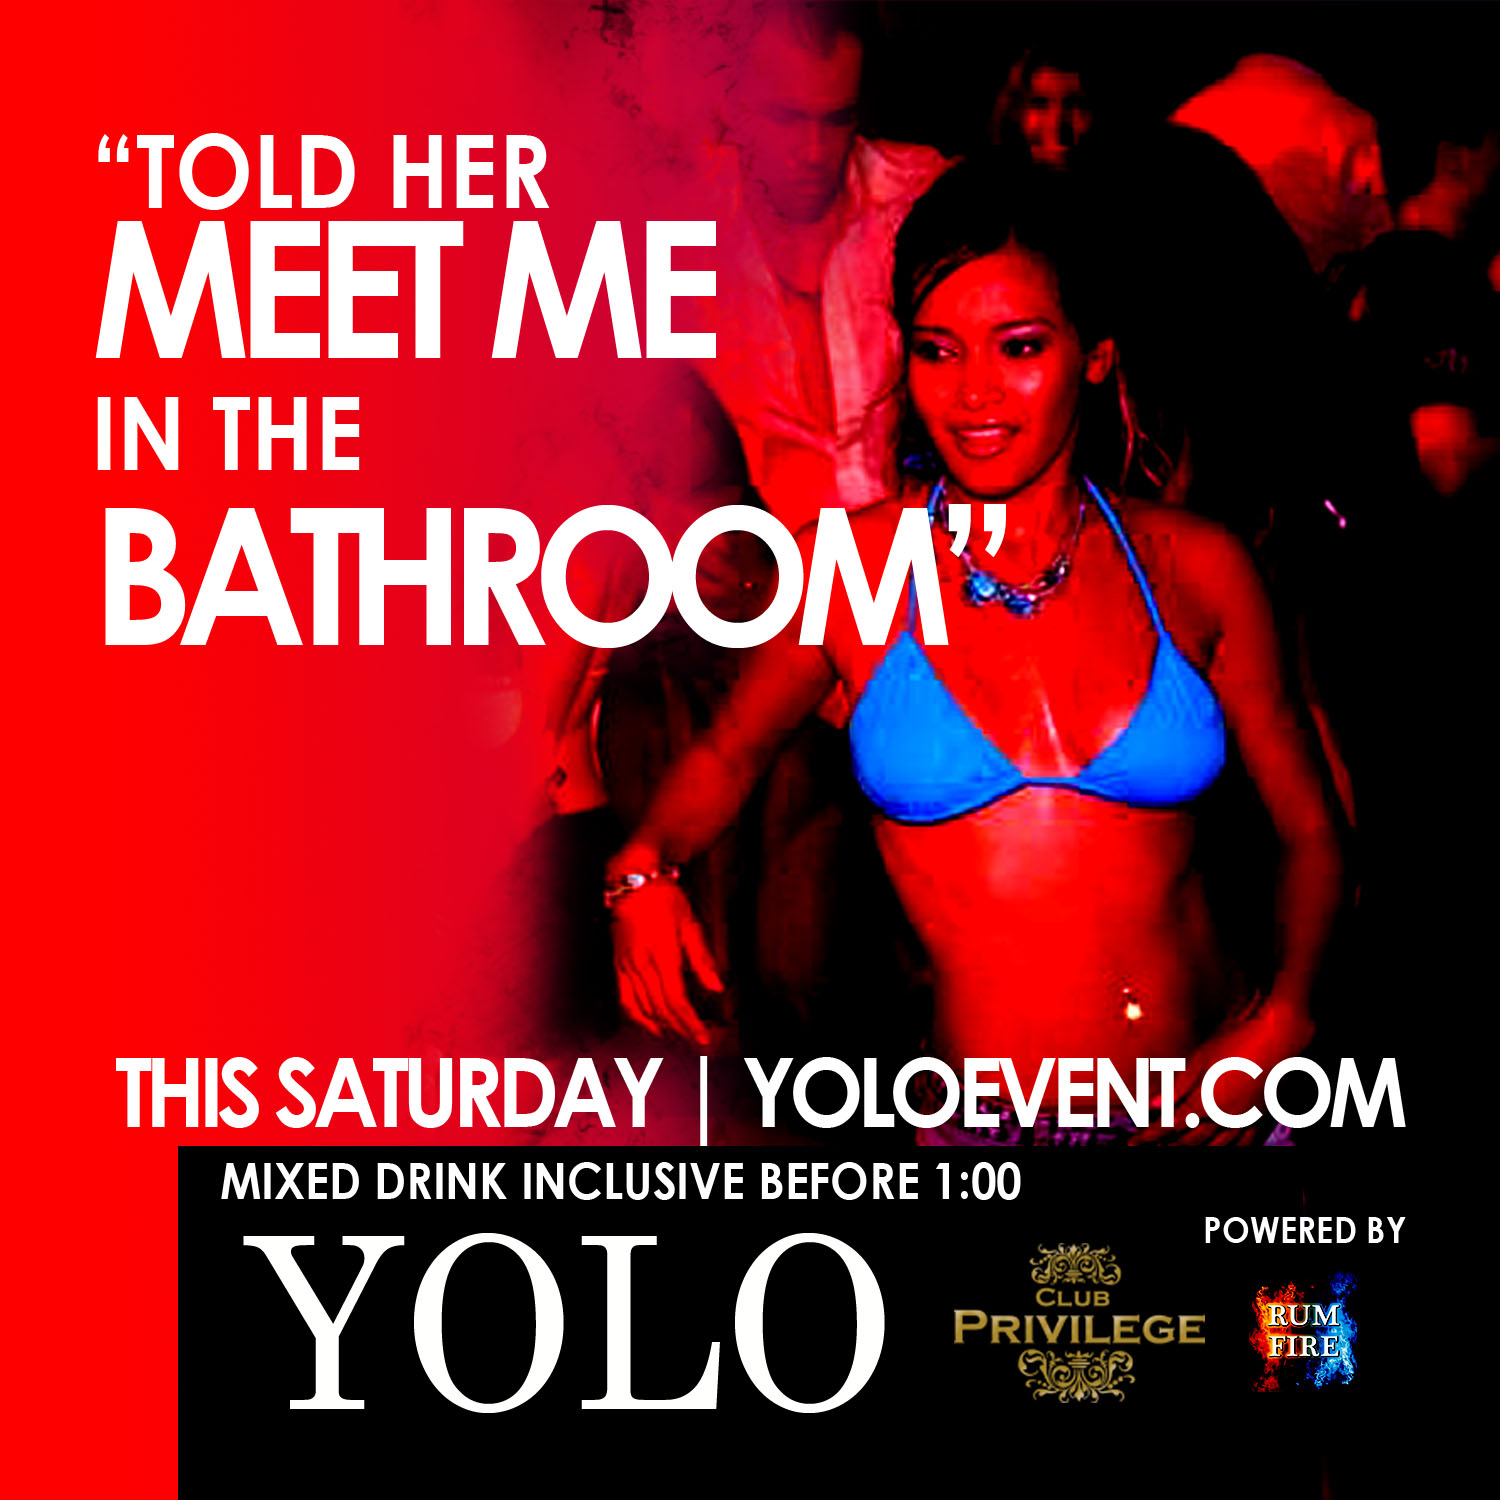 Come Meet Me In The Bathroom Stall: Jay-Z & Kanye West Original Song